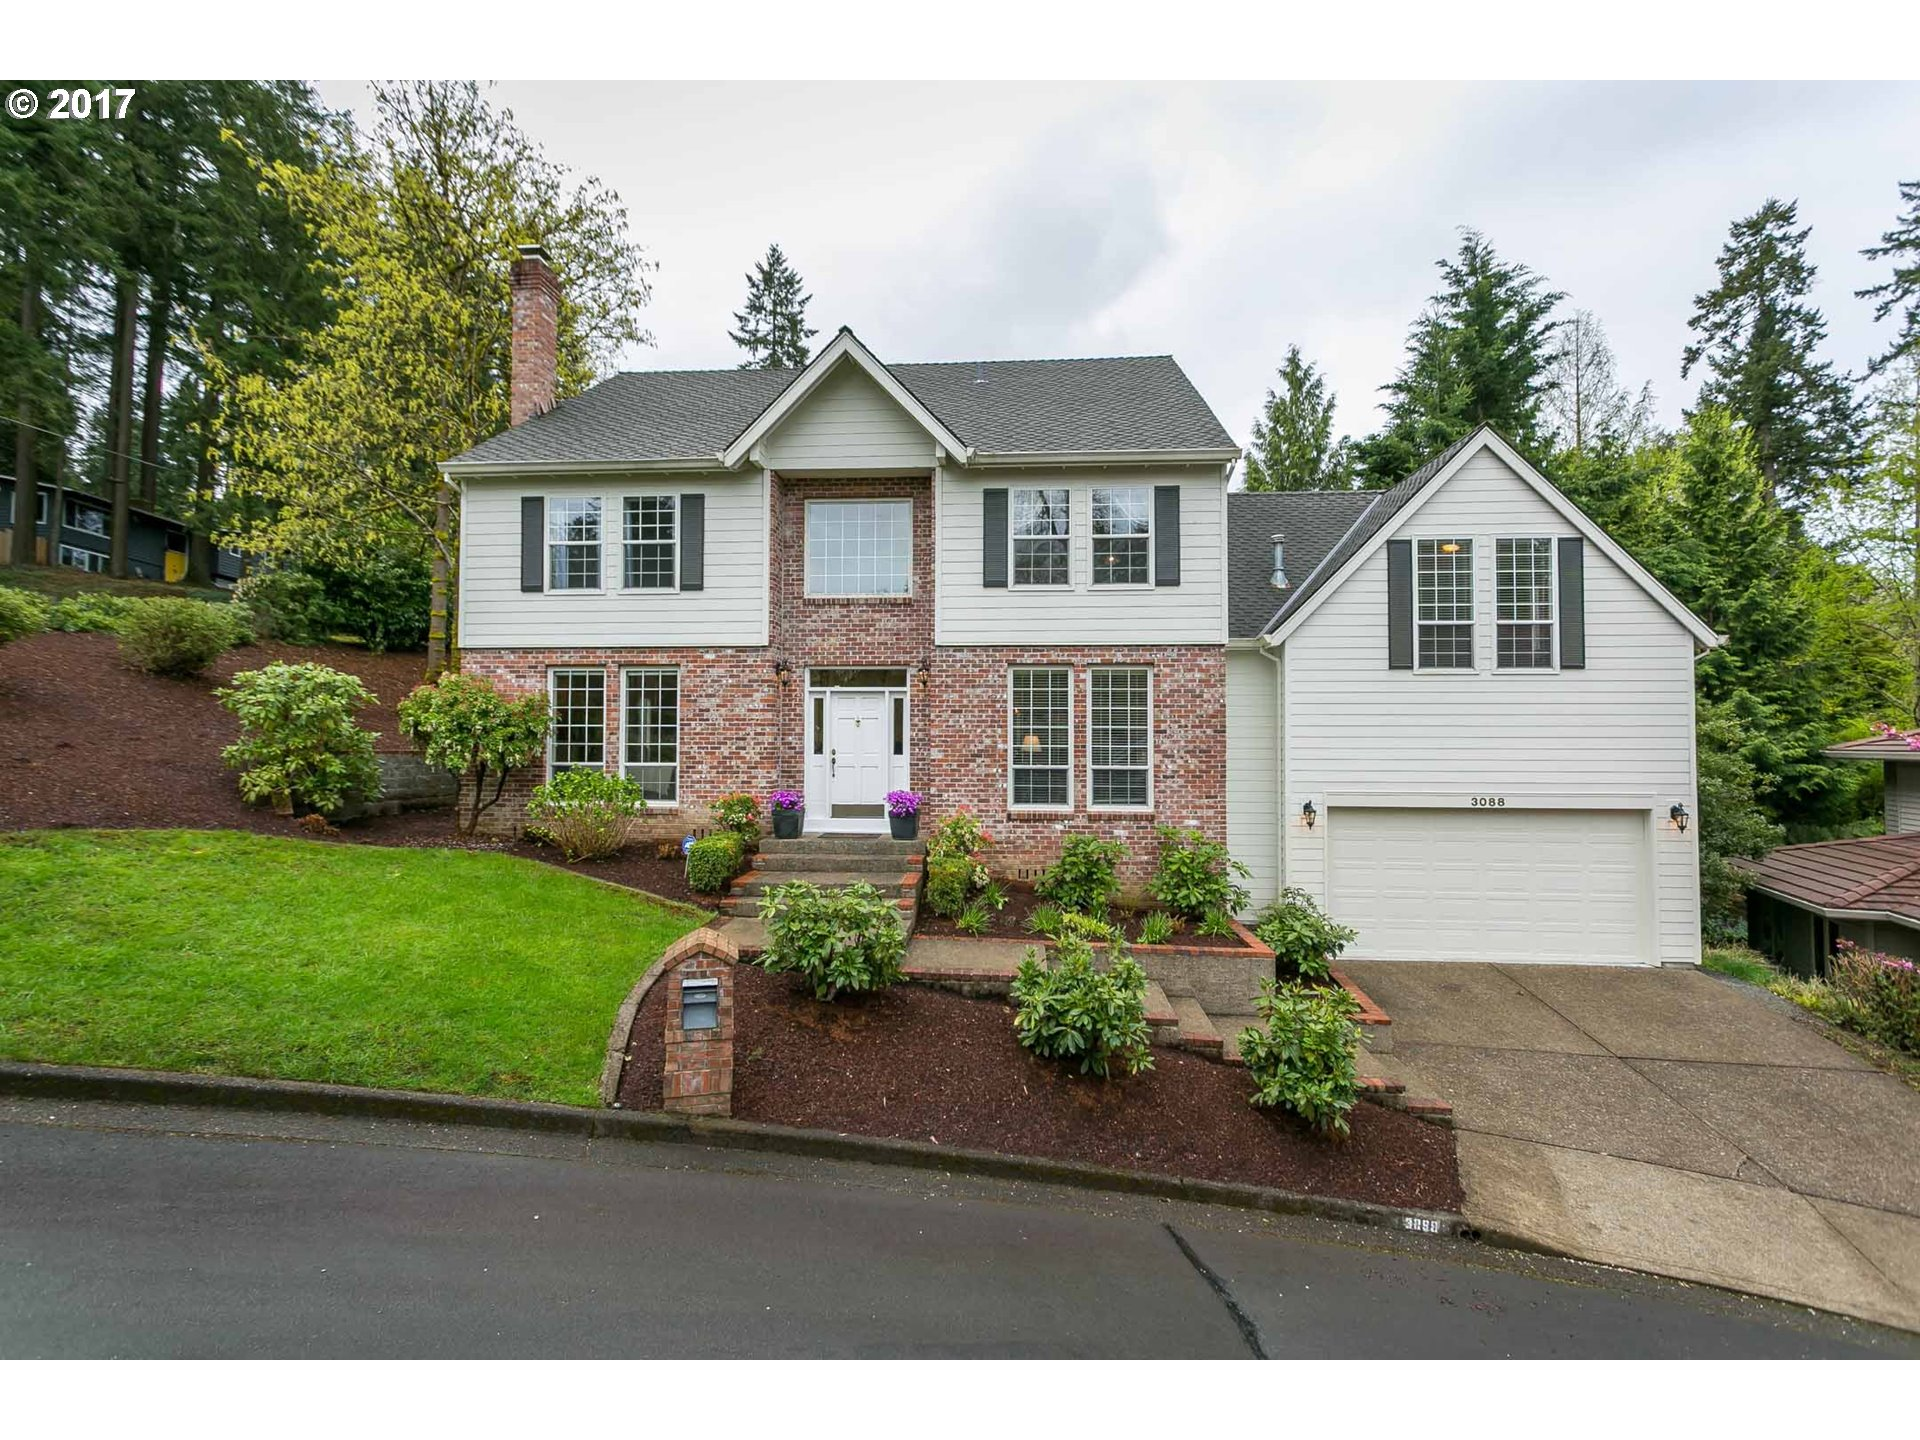 3088 ROSEMARY LN, Lake Oswego, OR 97034